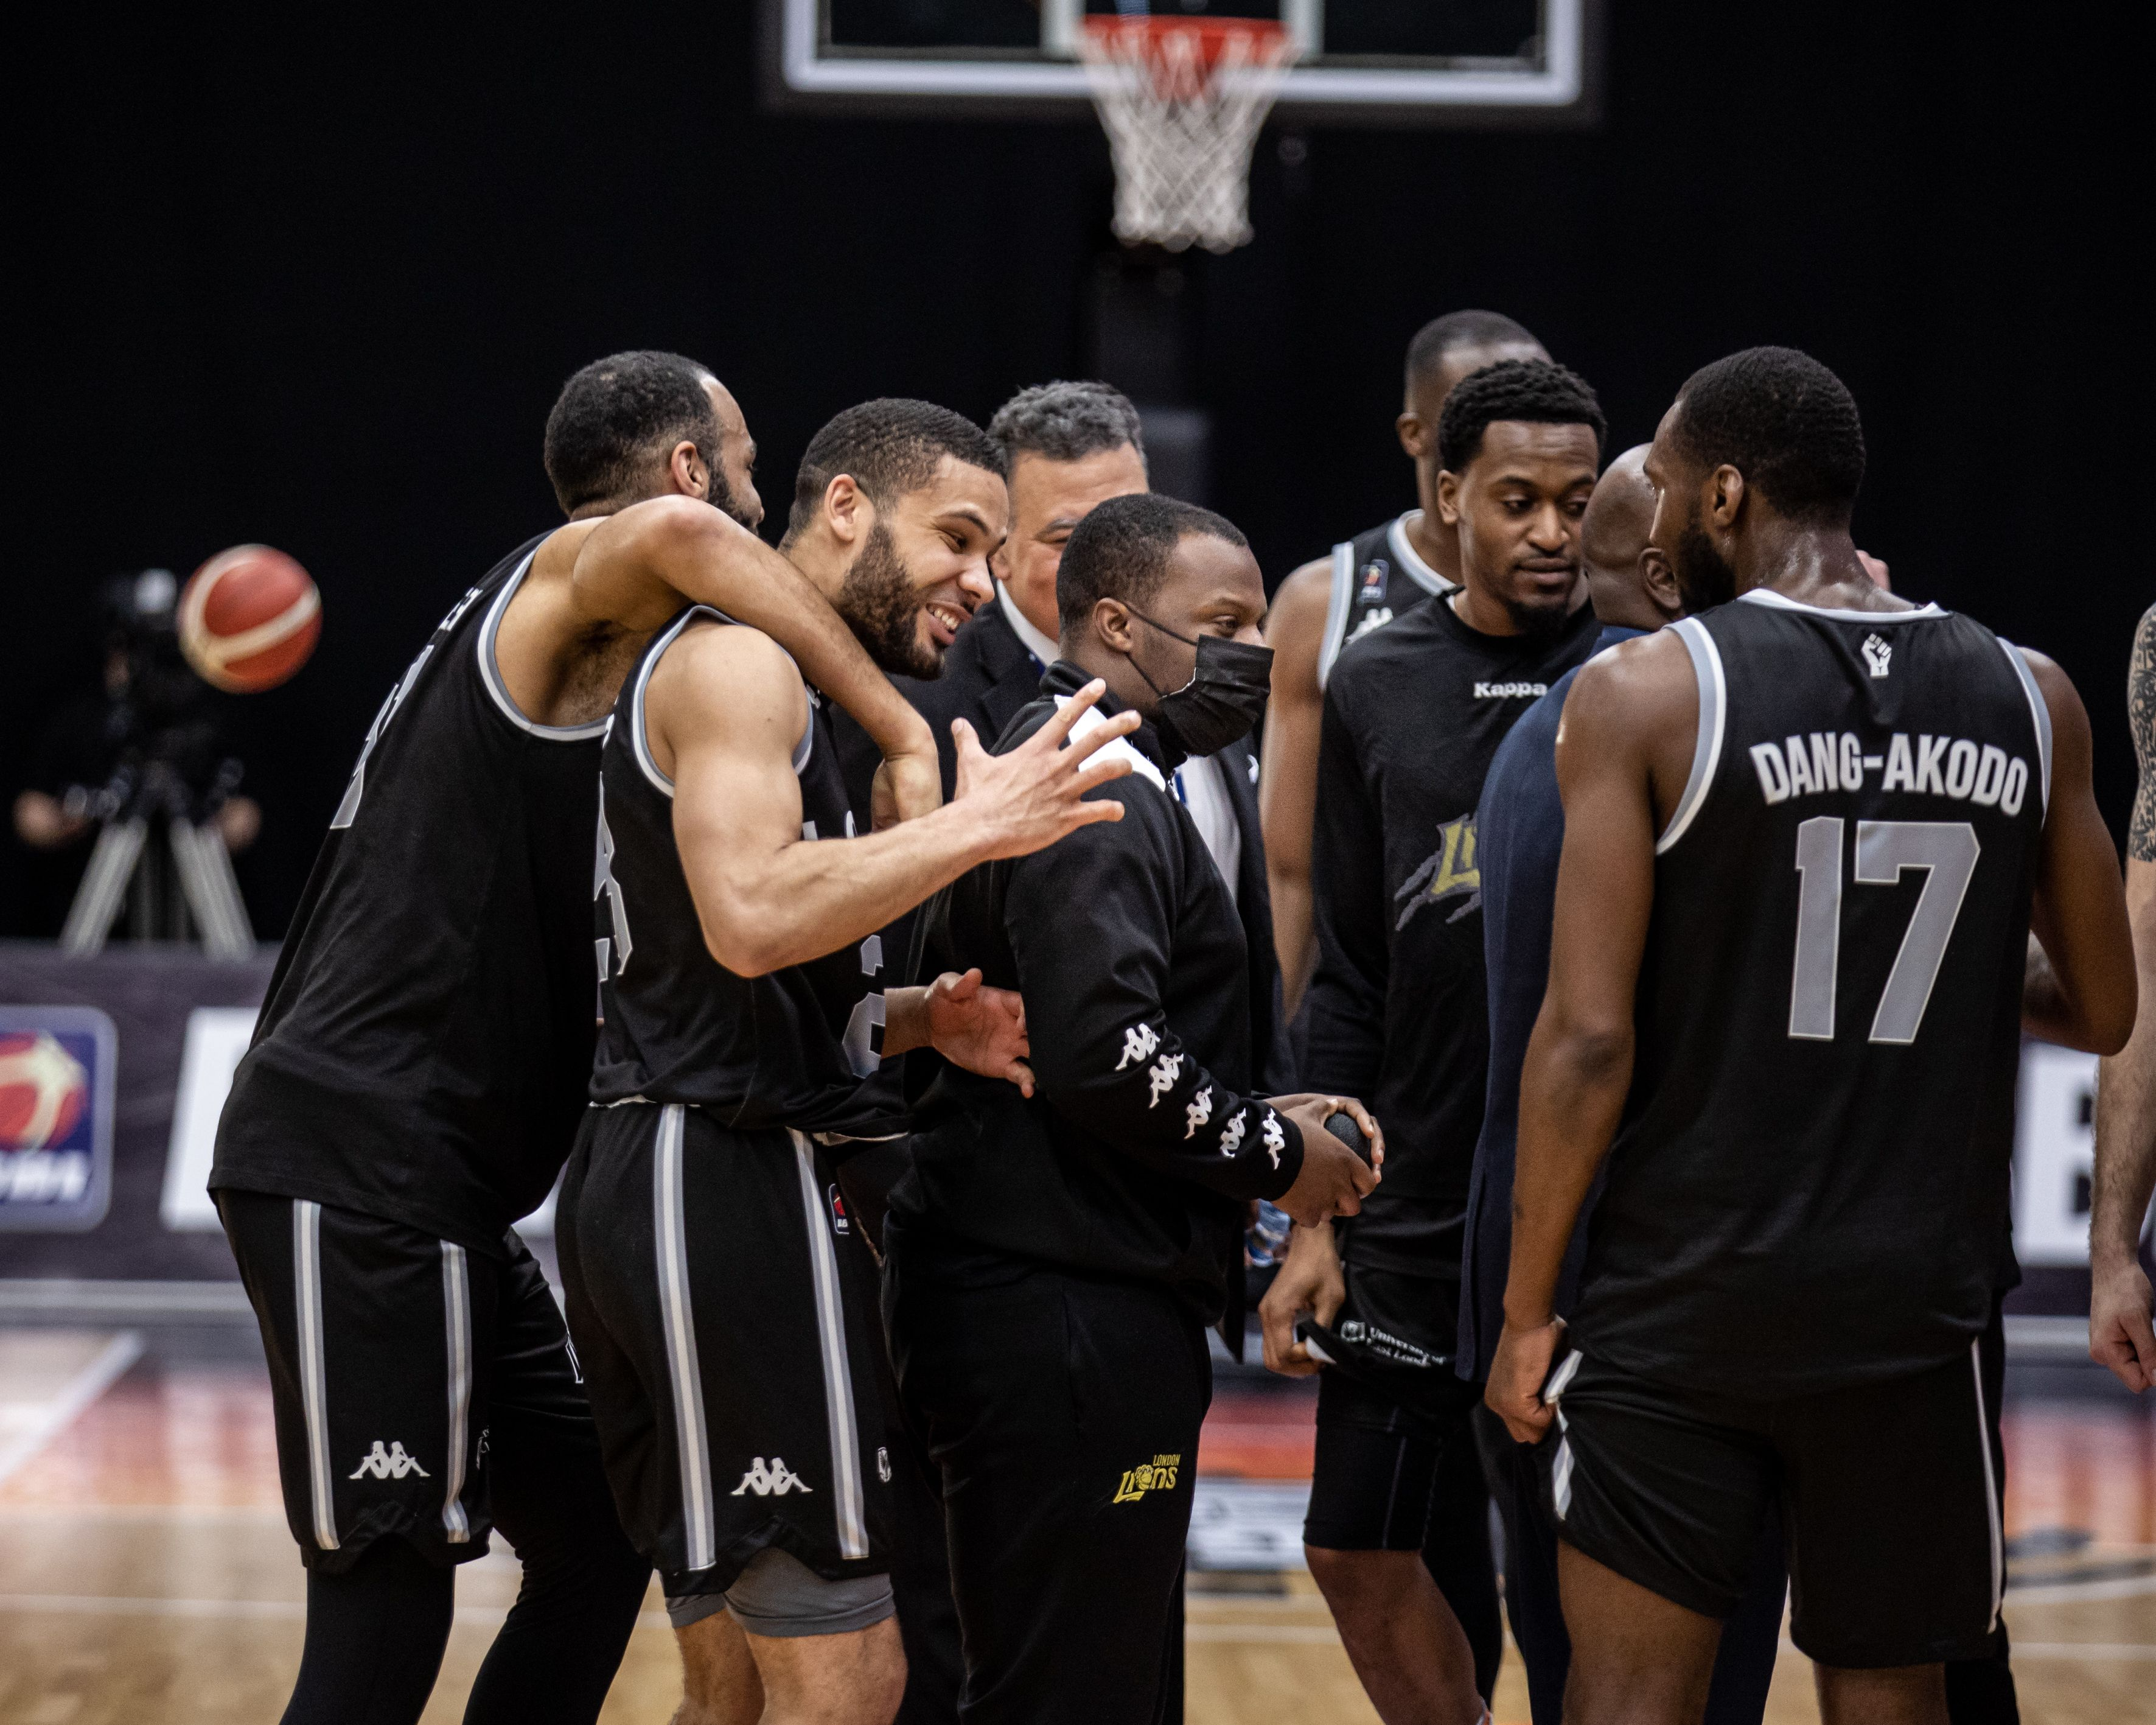 Preview: BBL Play Off Final